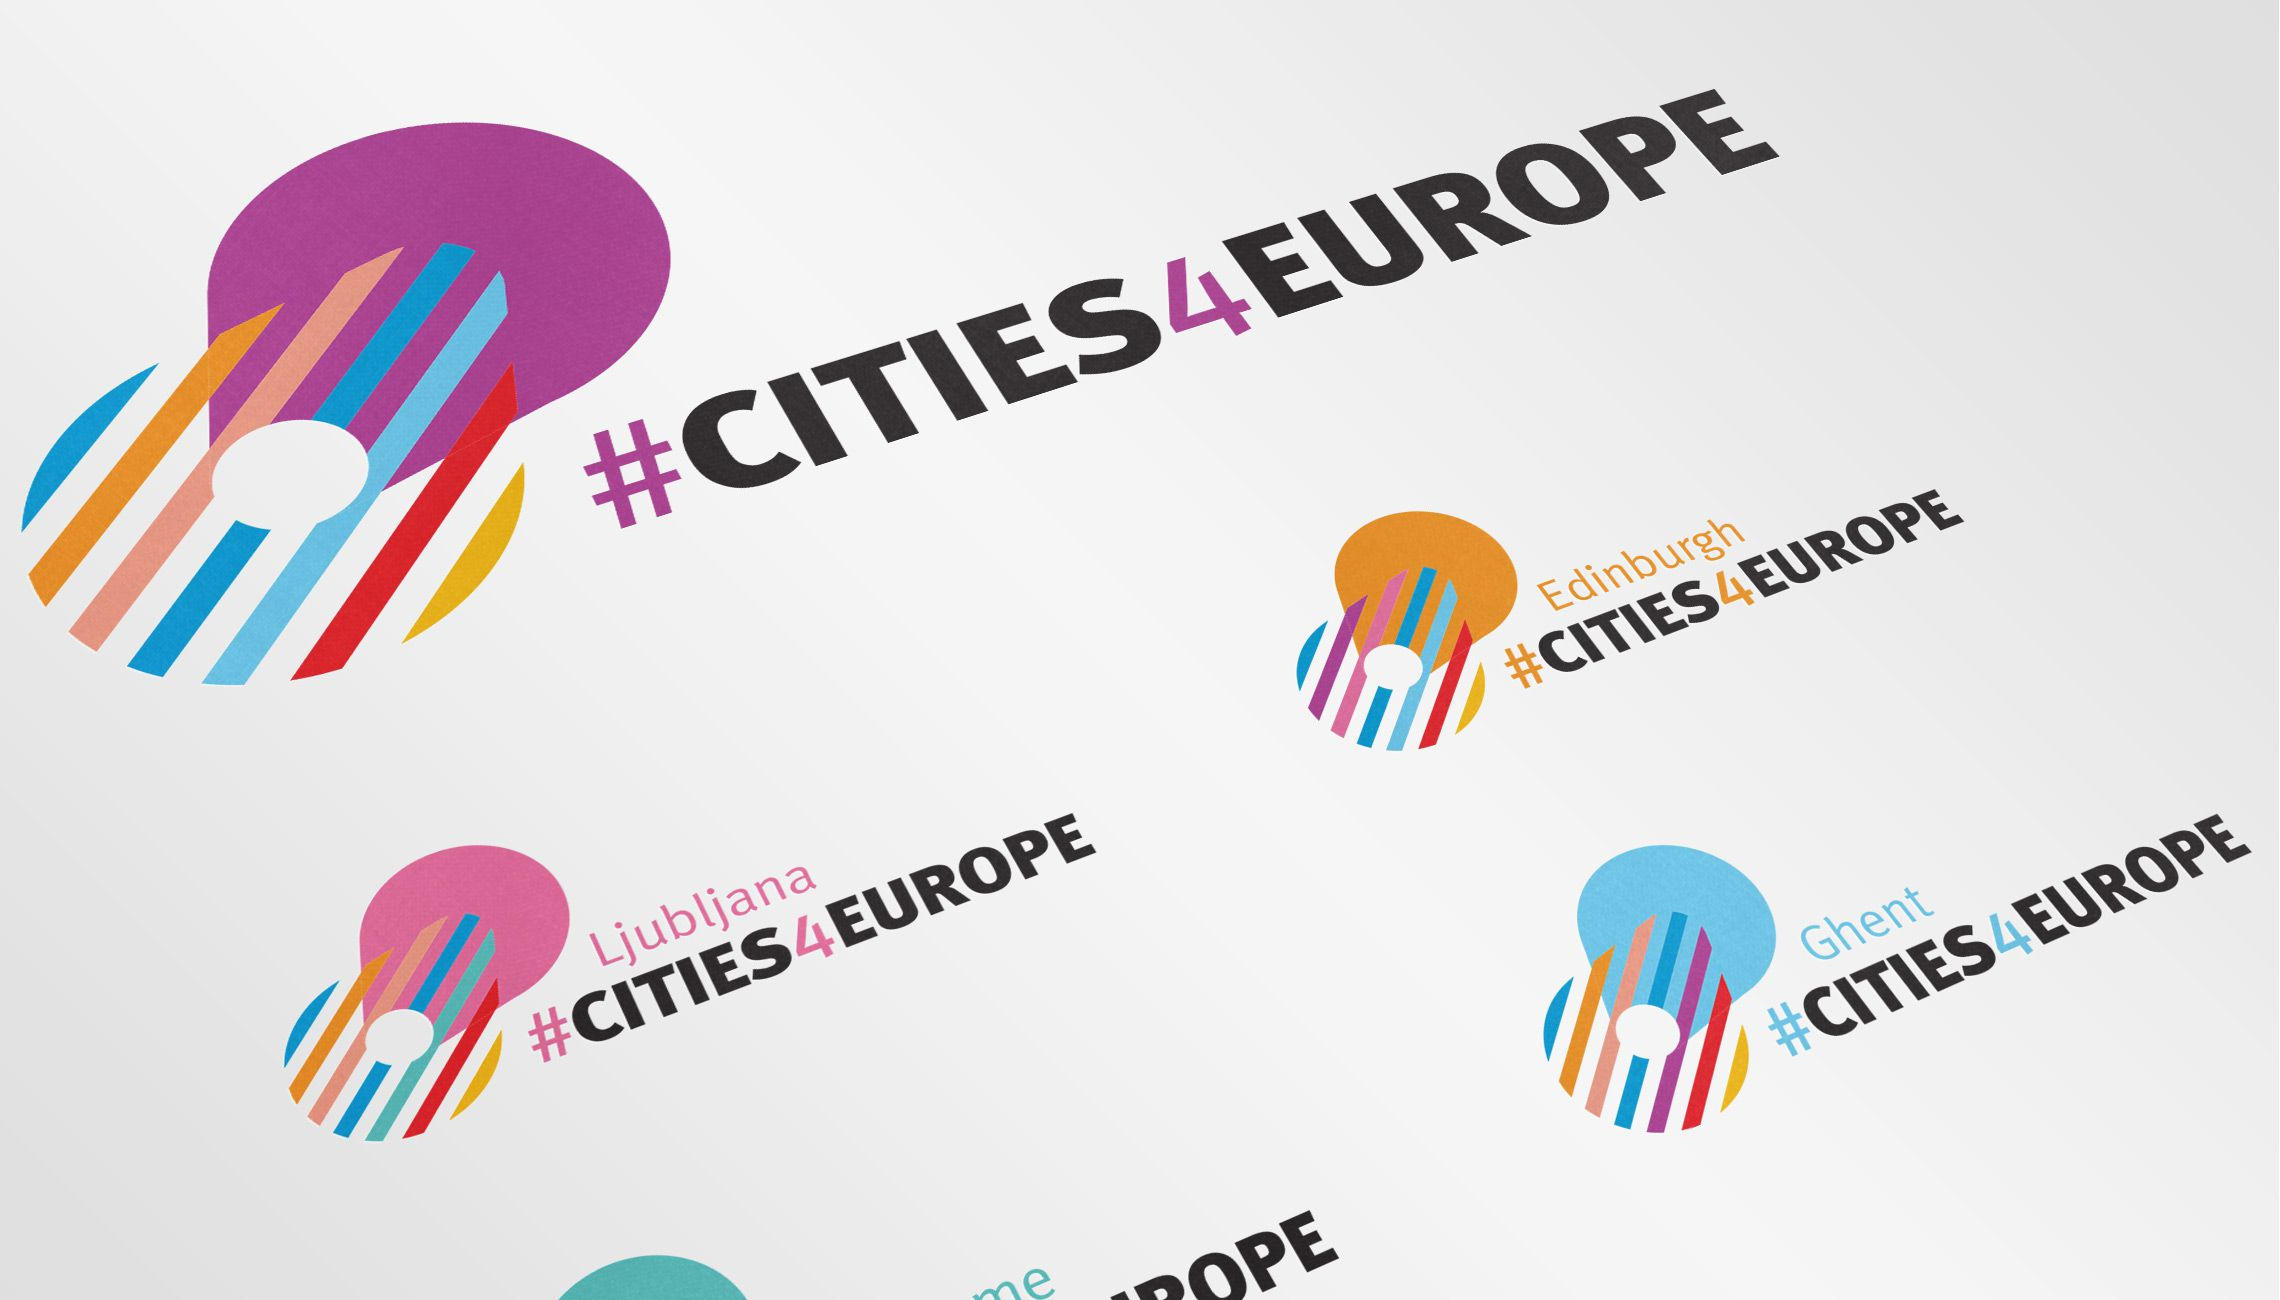 identity: Cities4Europe - image 1